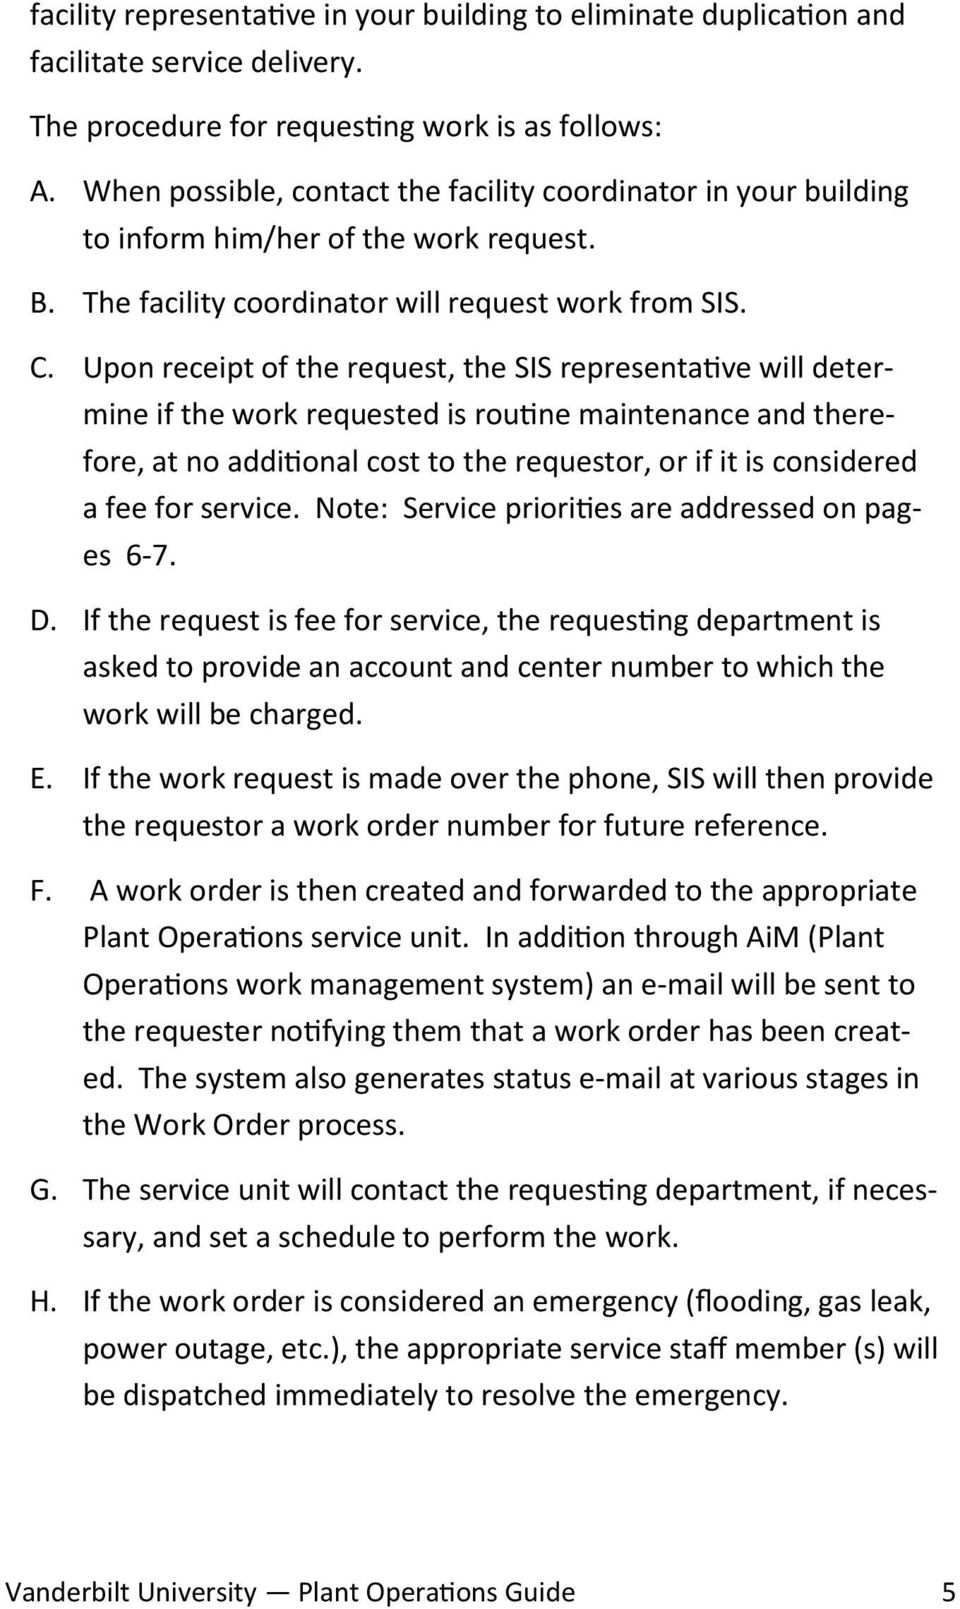 Upon receipt of the request, the SIS representative will determine if the work requested is routine maintenance and therefore, at no additional cost to the requestor, or if it is considered a fee for